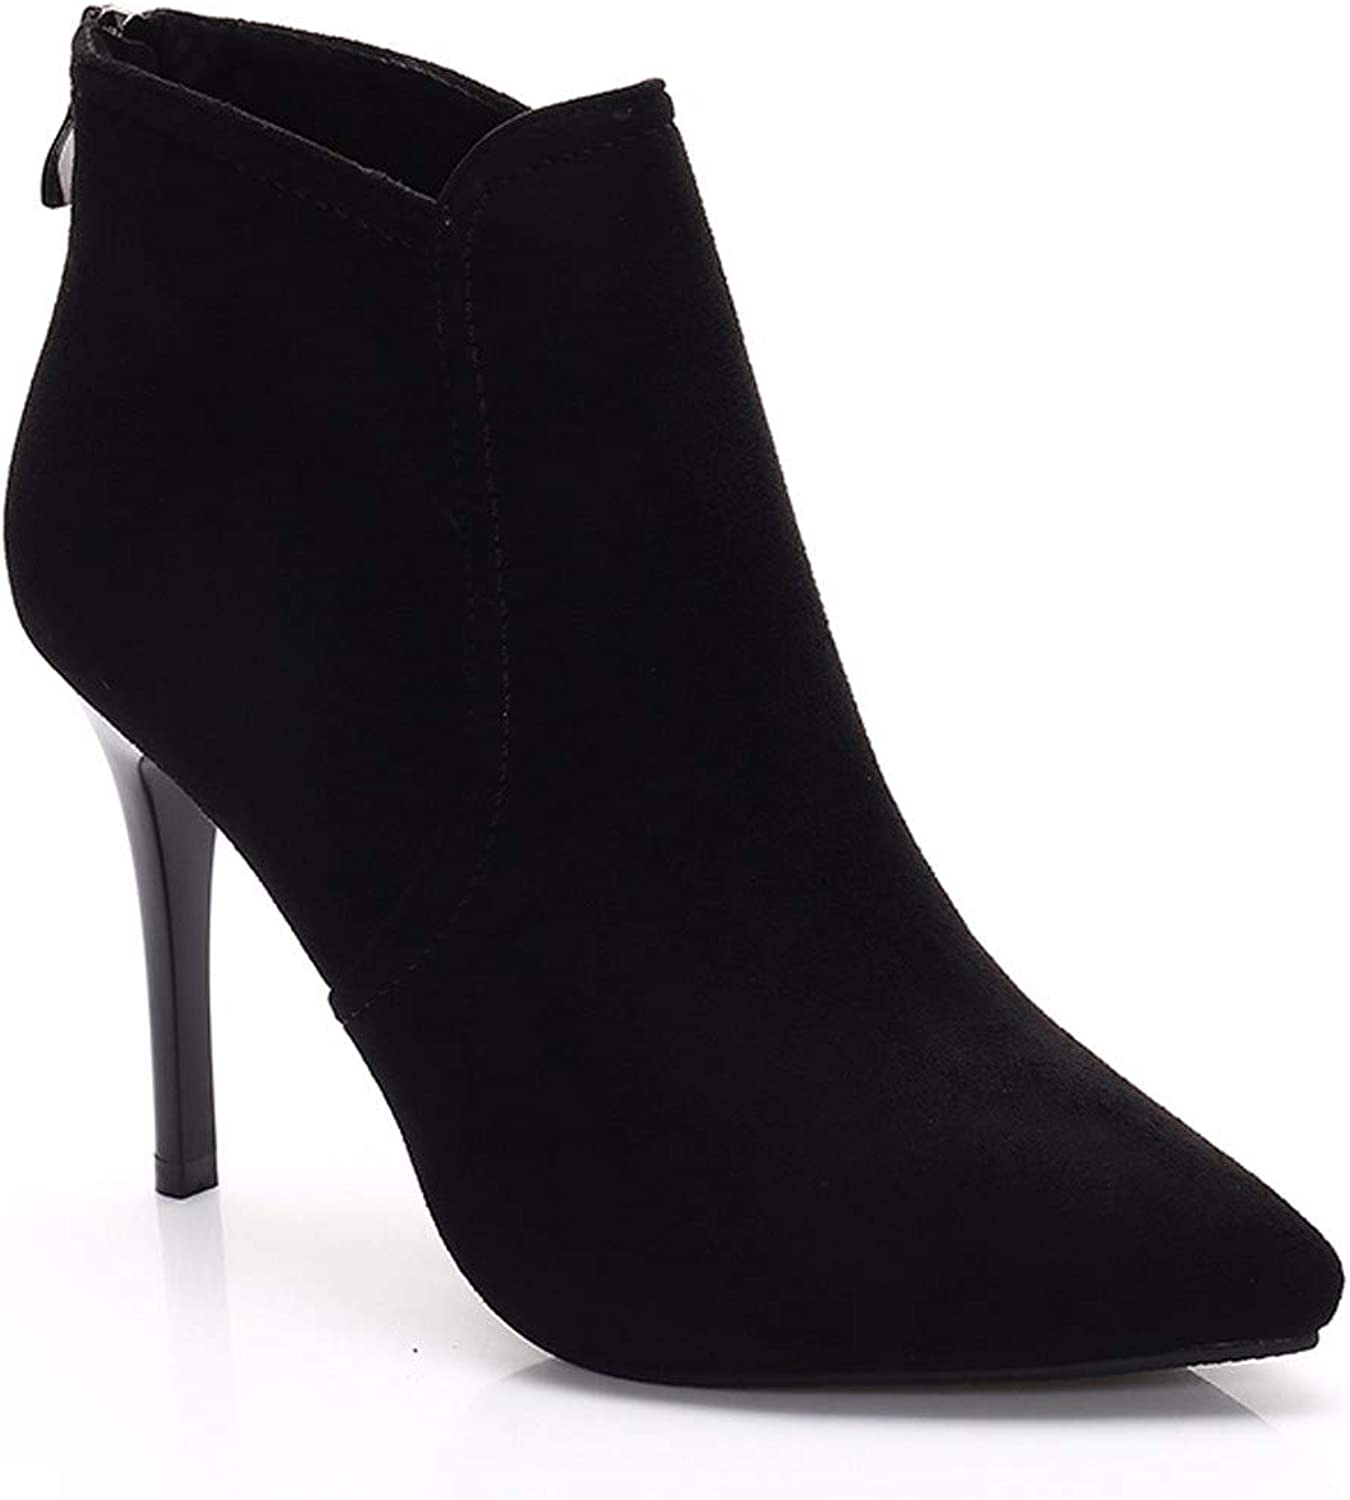 SFSYDDY Popular shoes Fine Heel Short Boots with High 10Cm Suede Simple Temperament Sharp Pointed Martin Boots Bare Boots.